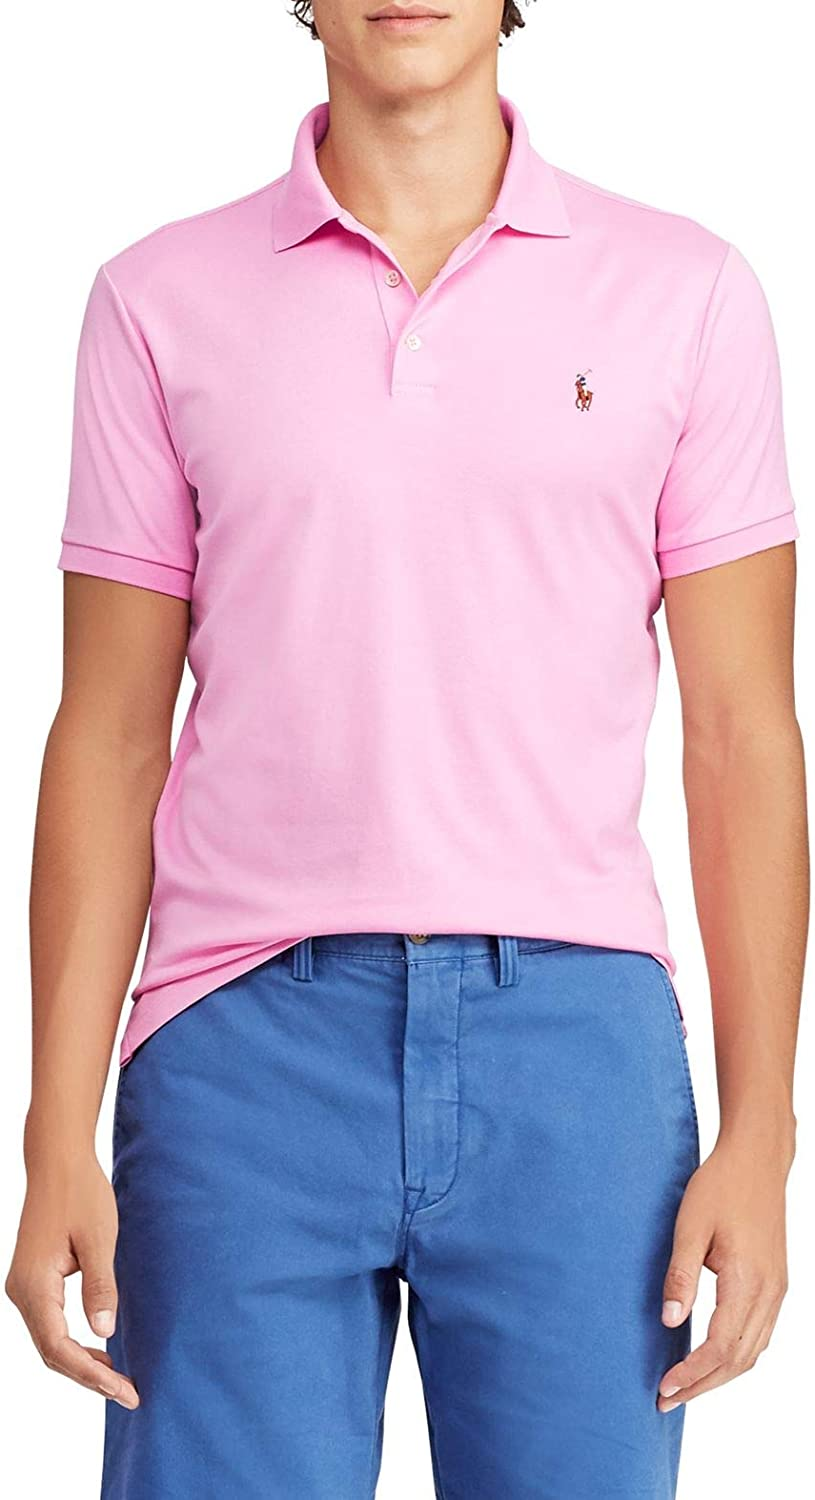 Polo Ralph Lauren Men's Classic Fit Soft Touch Polo, Hampton Pink, Small